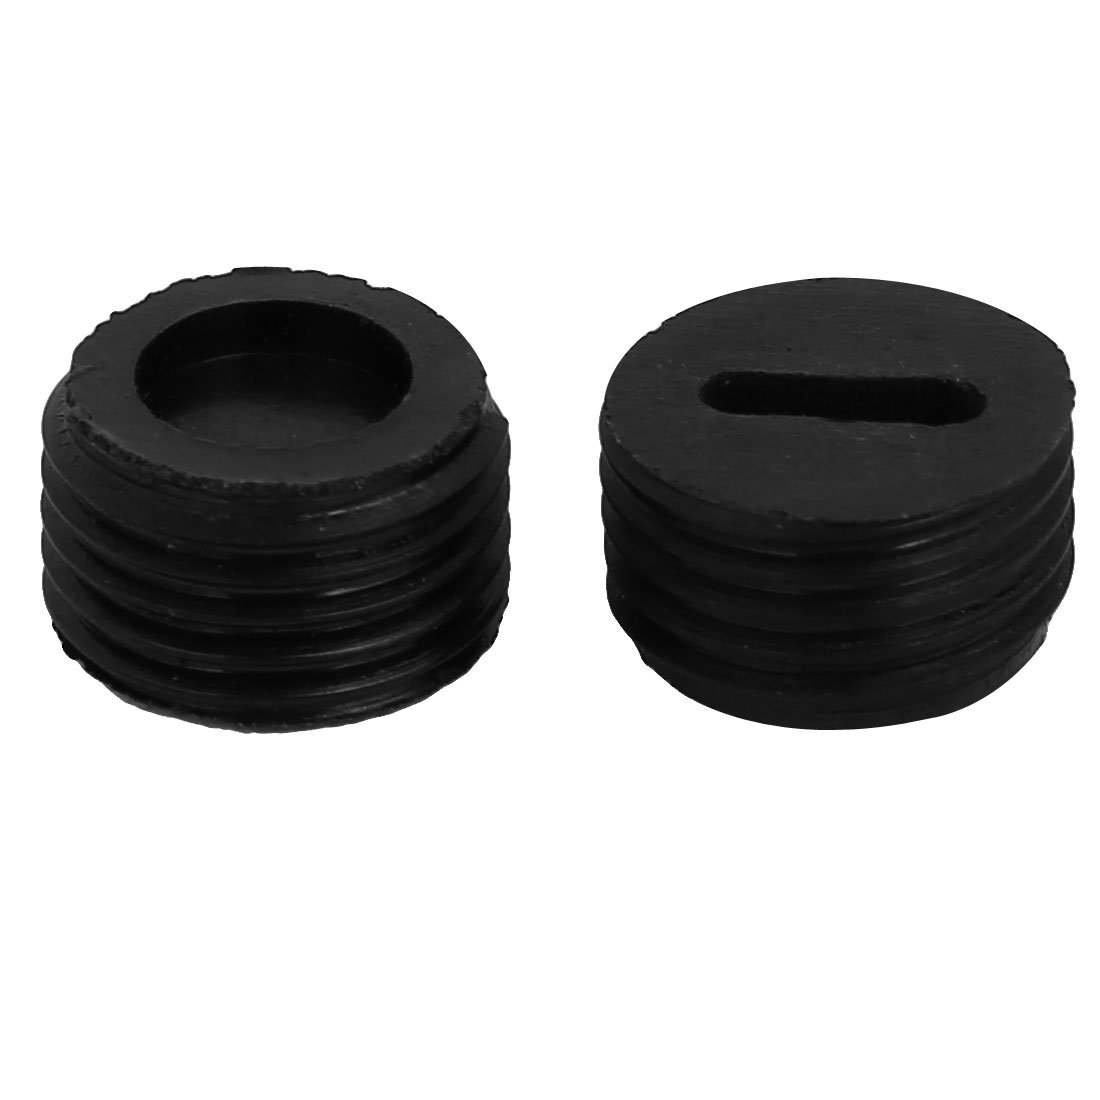 uxcell 15pcs 10mm Outer Dia Male Thread Plastic Motor Carbon Brush Holder Cap Cover